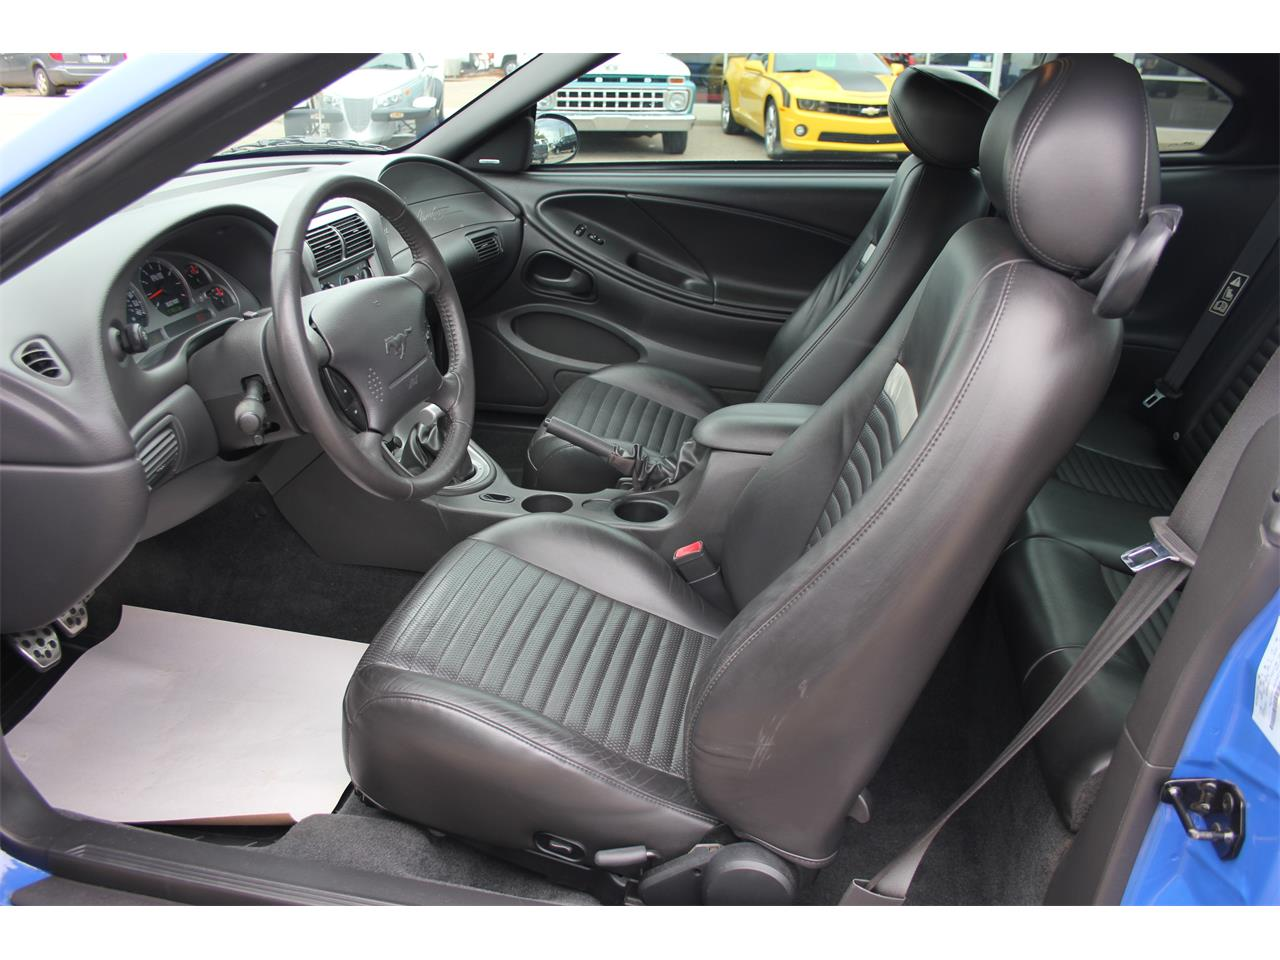 Large Picture of '03 Ford Mustang Mach 1 located in Sylvan Lake Alberta - $19,900.00 Offered by Adrenalin Motors - LAXP